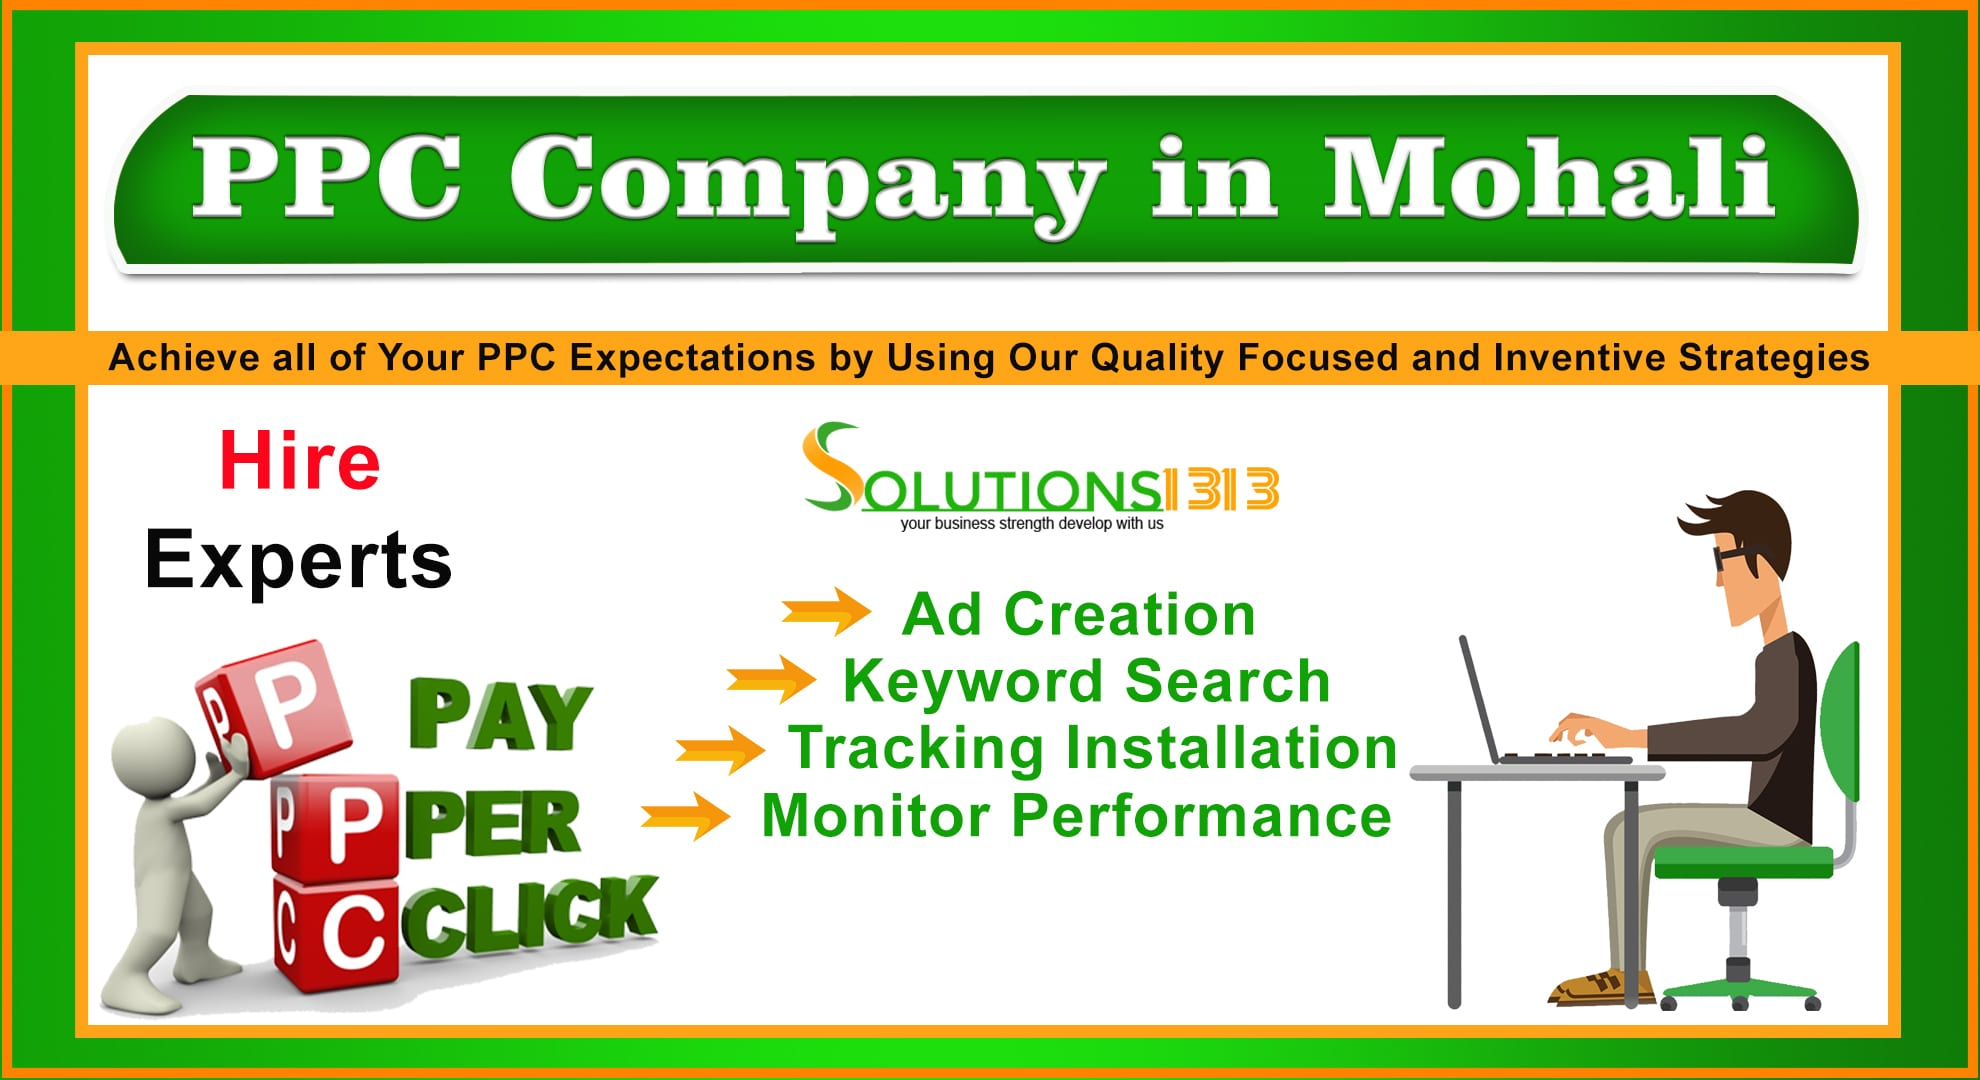 PPC Company in Mohali